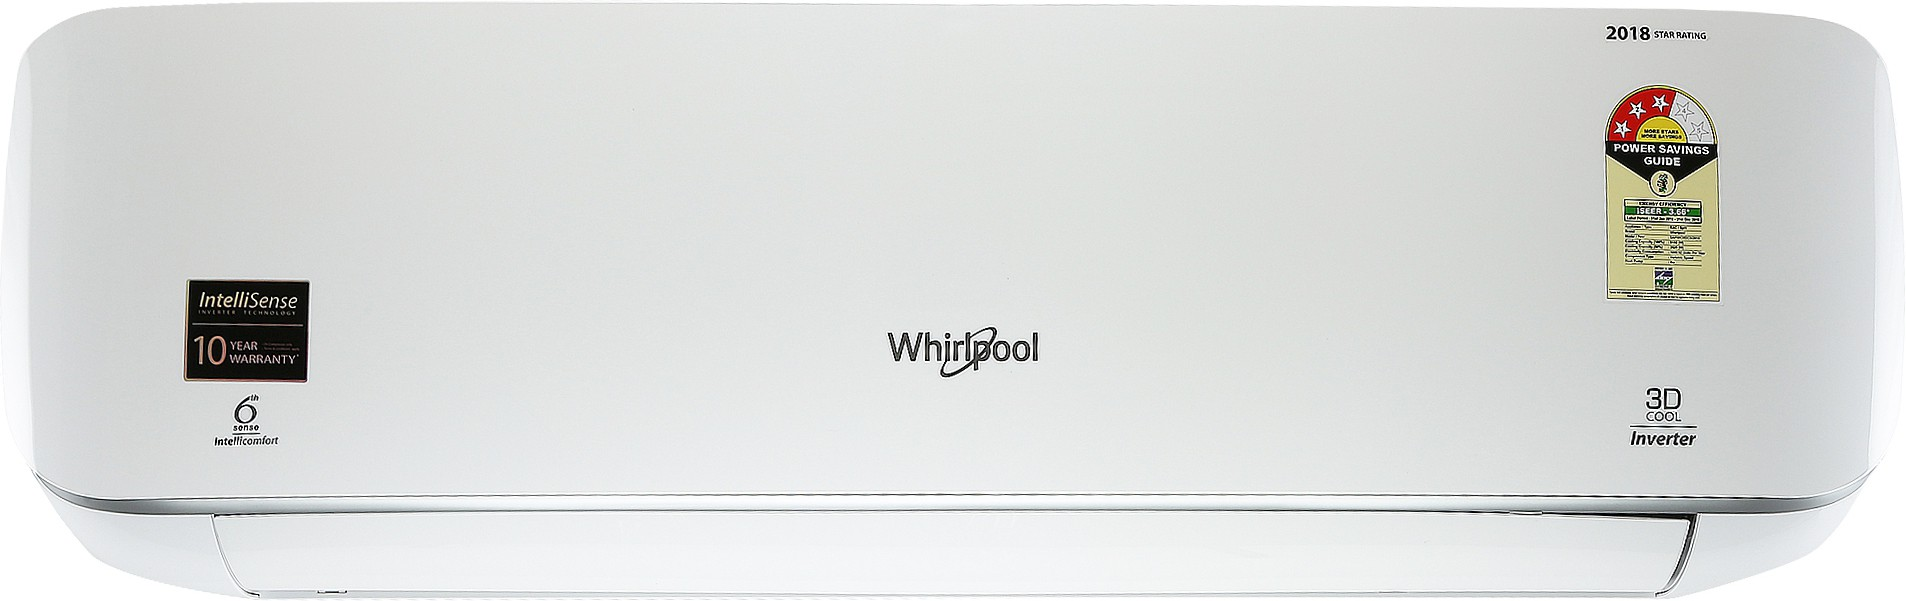 Whirlpool 3D COOL 1.5 Ton 3 Star BEE Rating 2018 Inverter AC Image